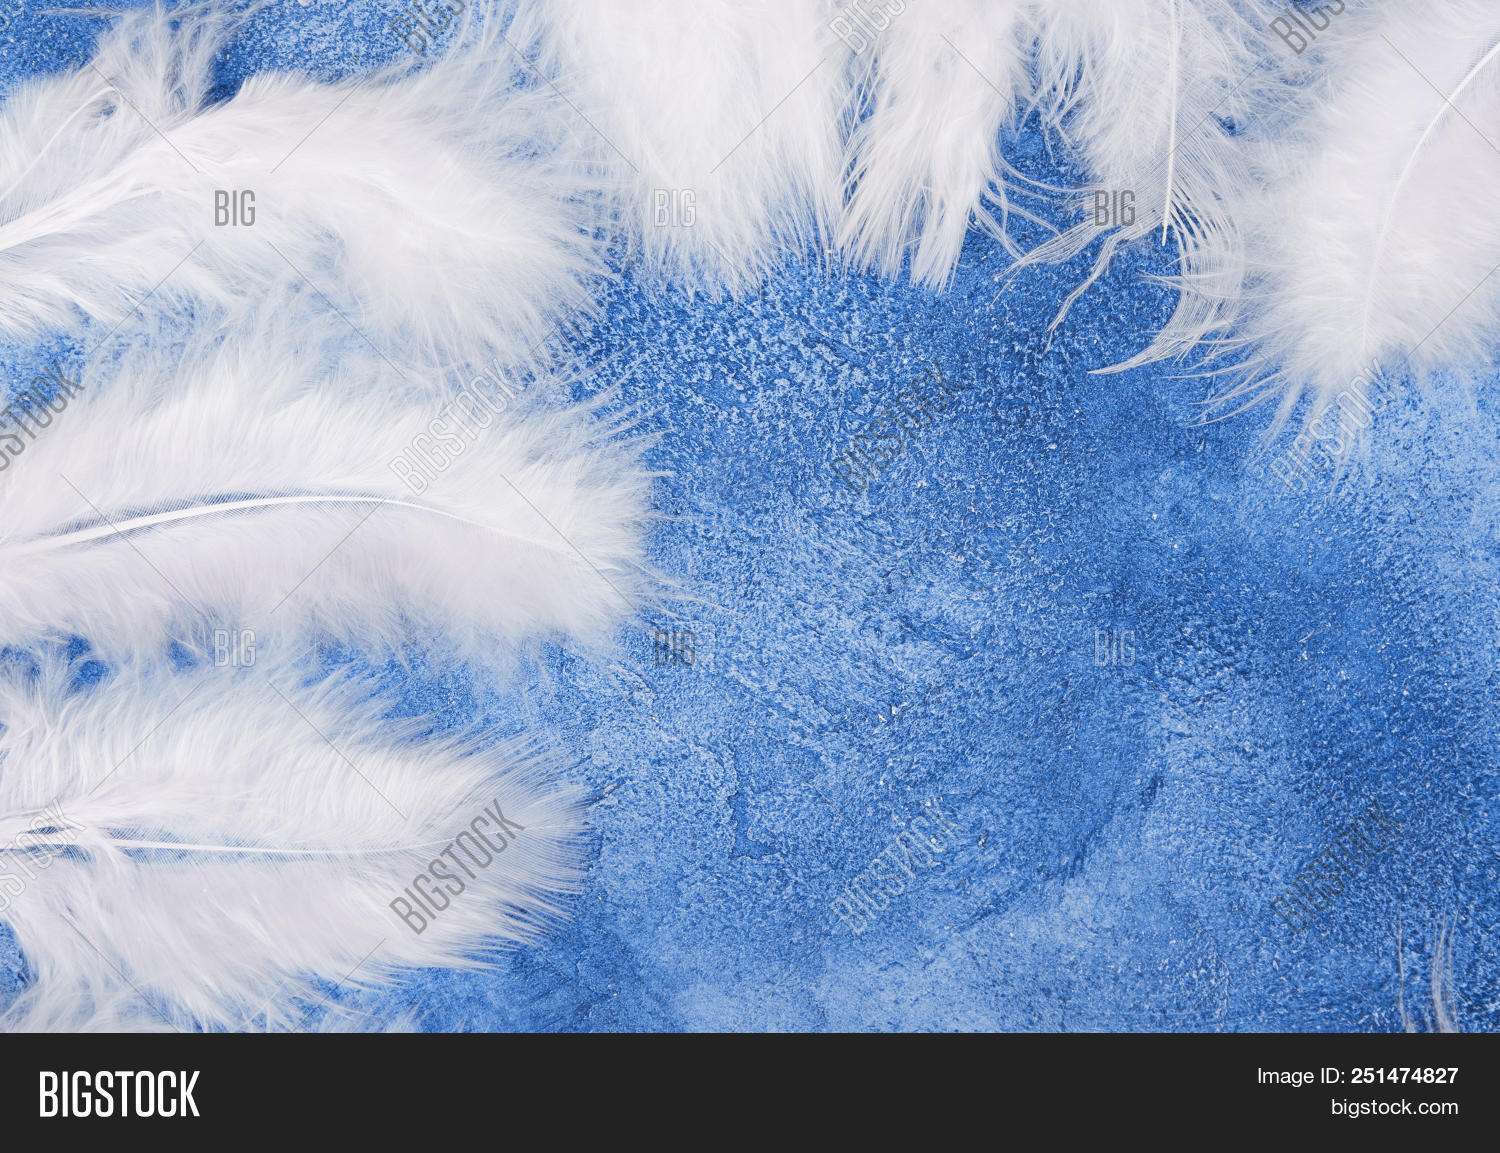 Fluffy White Feathers Image Photo Free Trial Bigstock